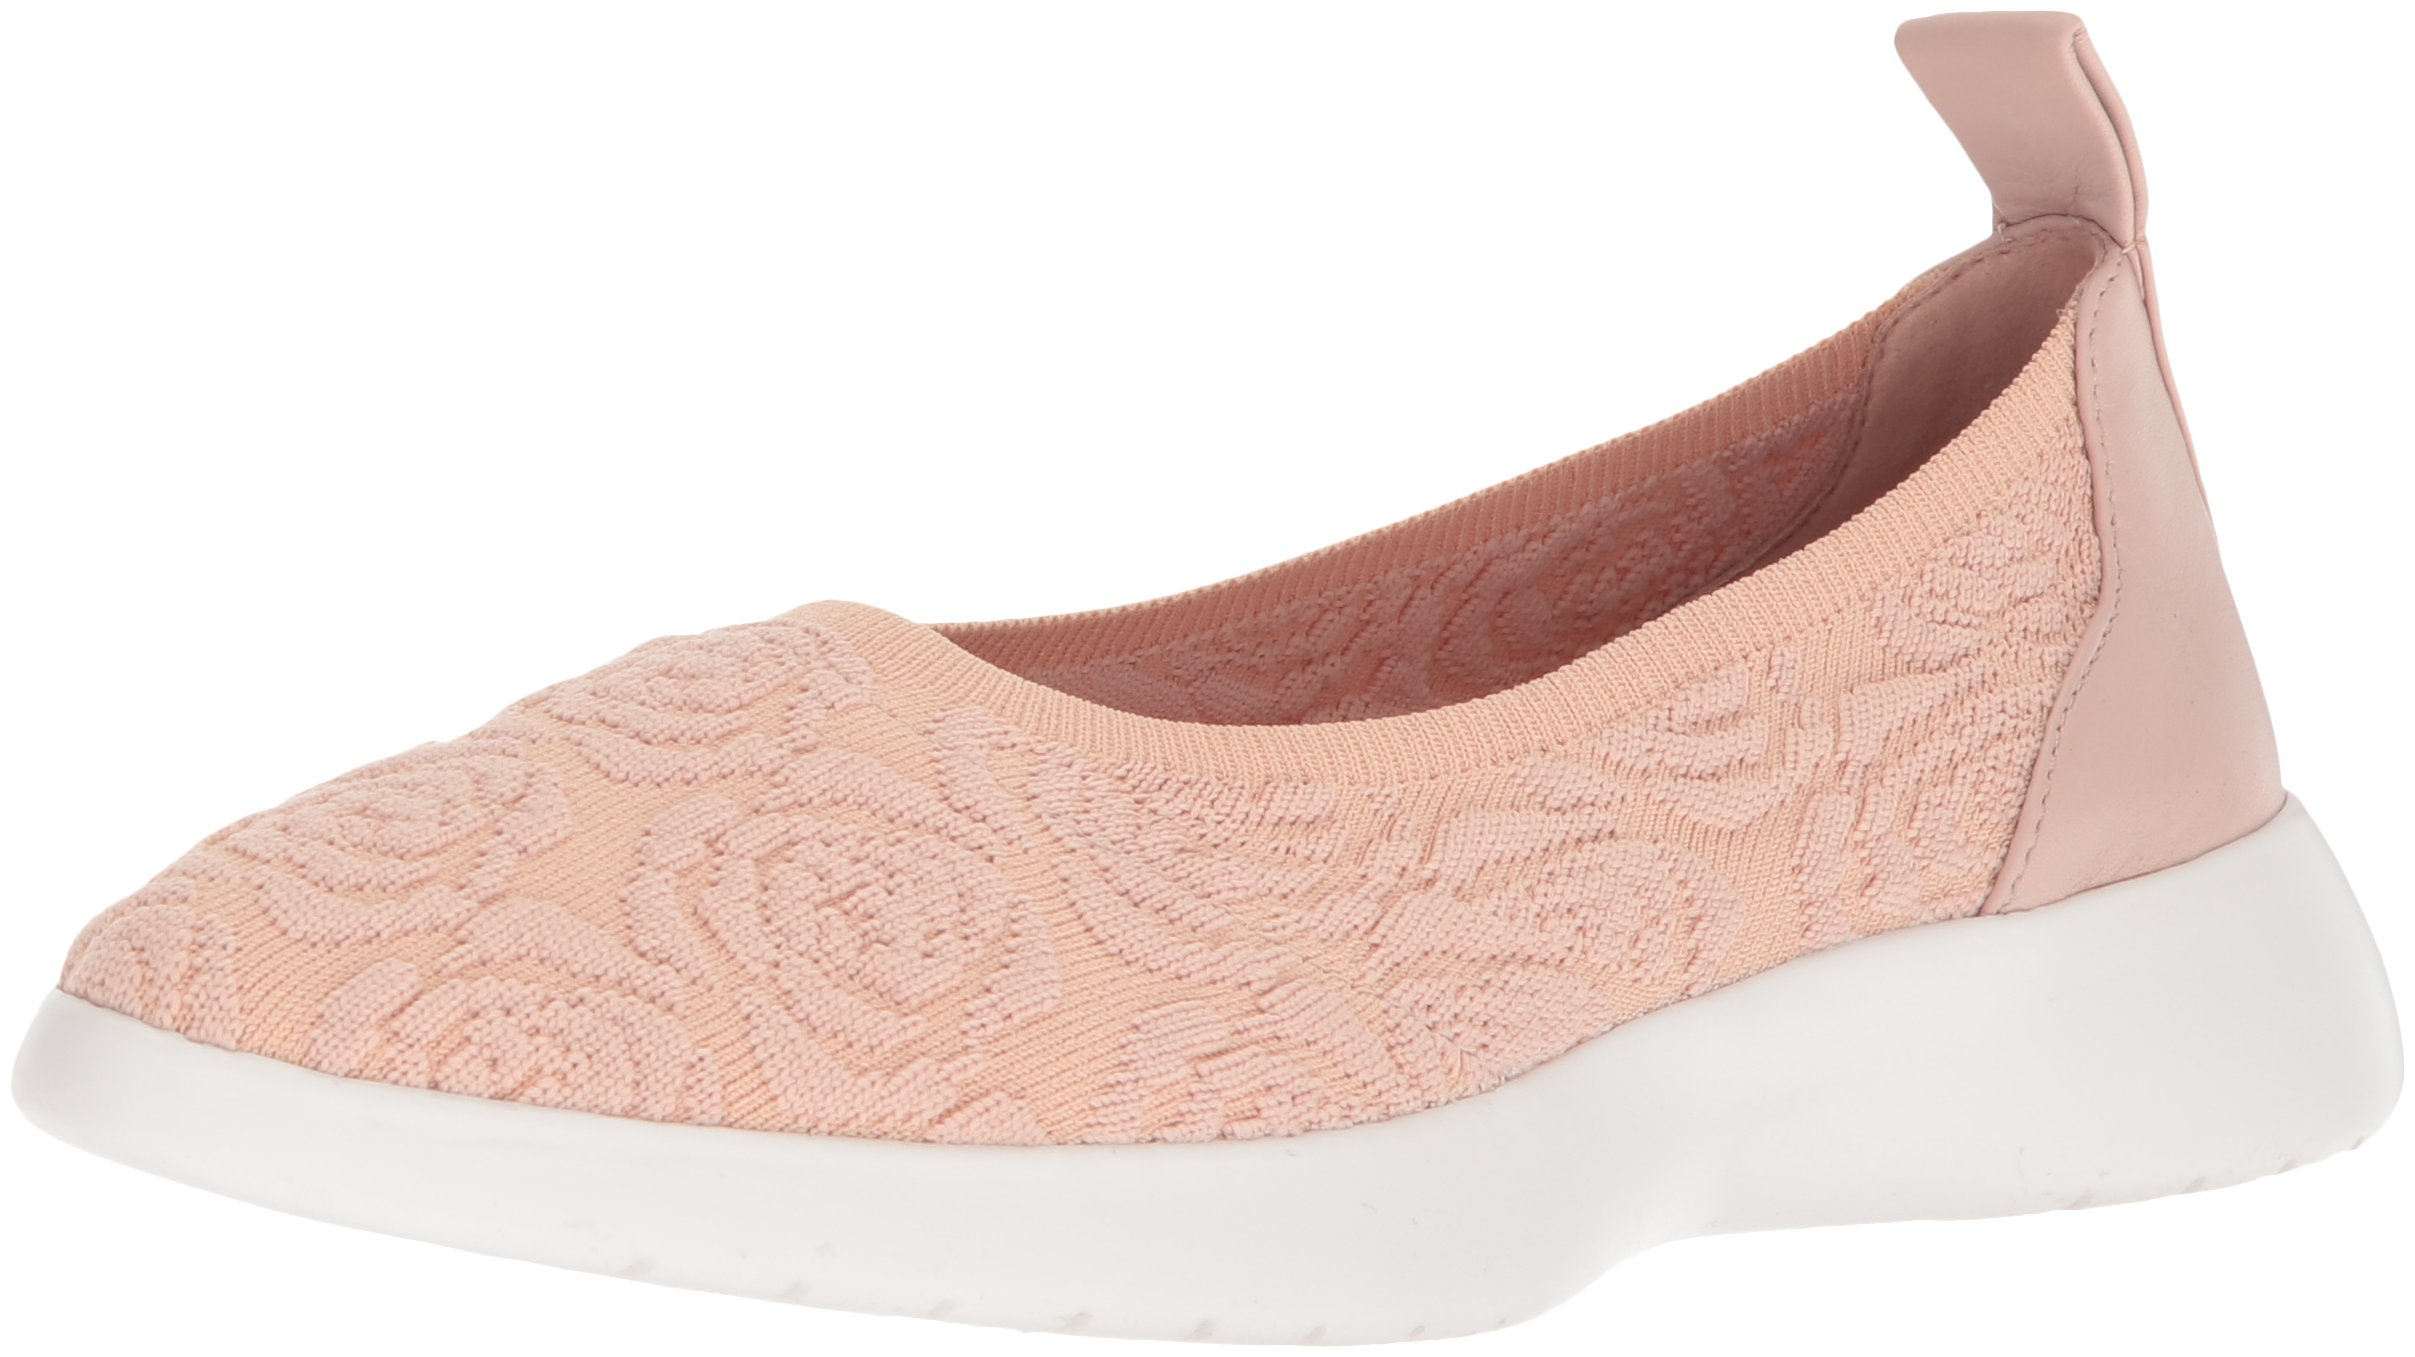 Taryn Rose Women's Daisy Knit Sneaker, Blush, 6.5 M M US